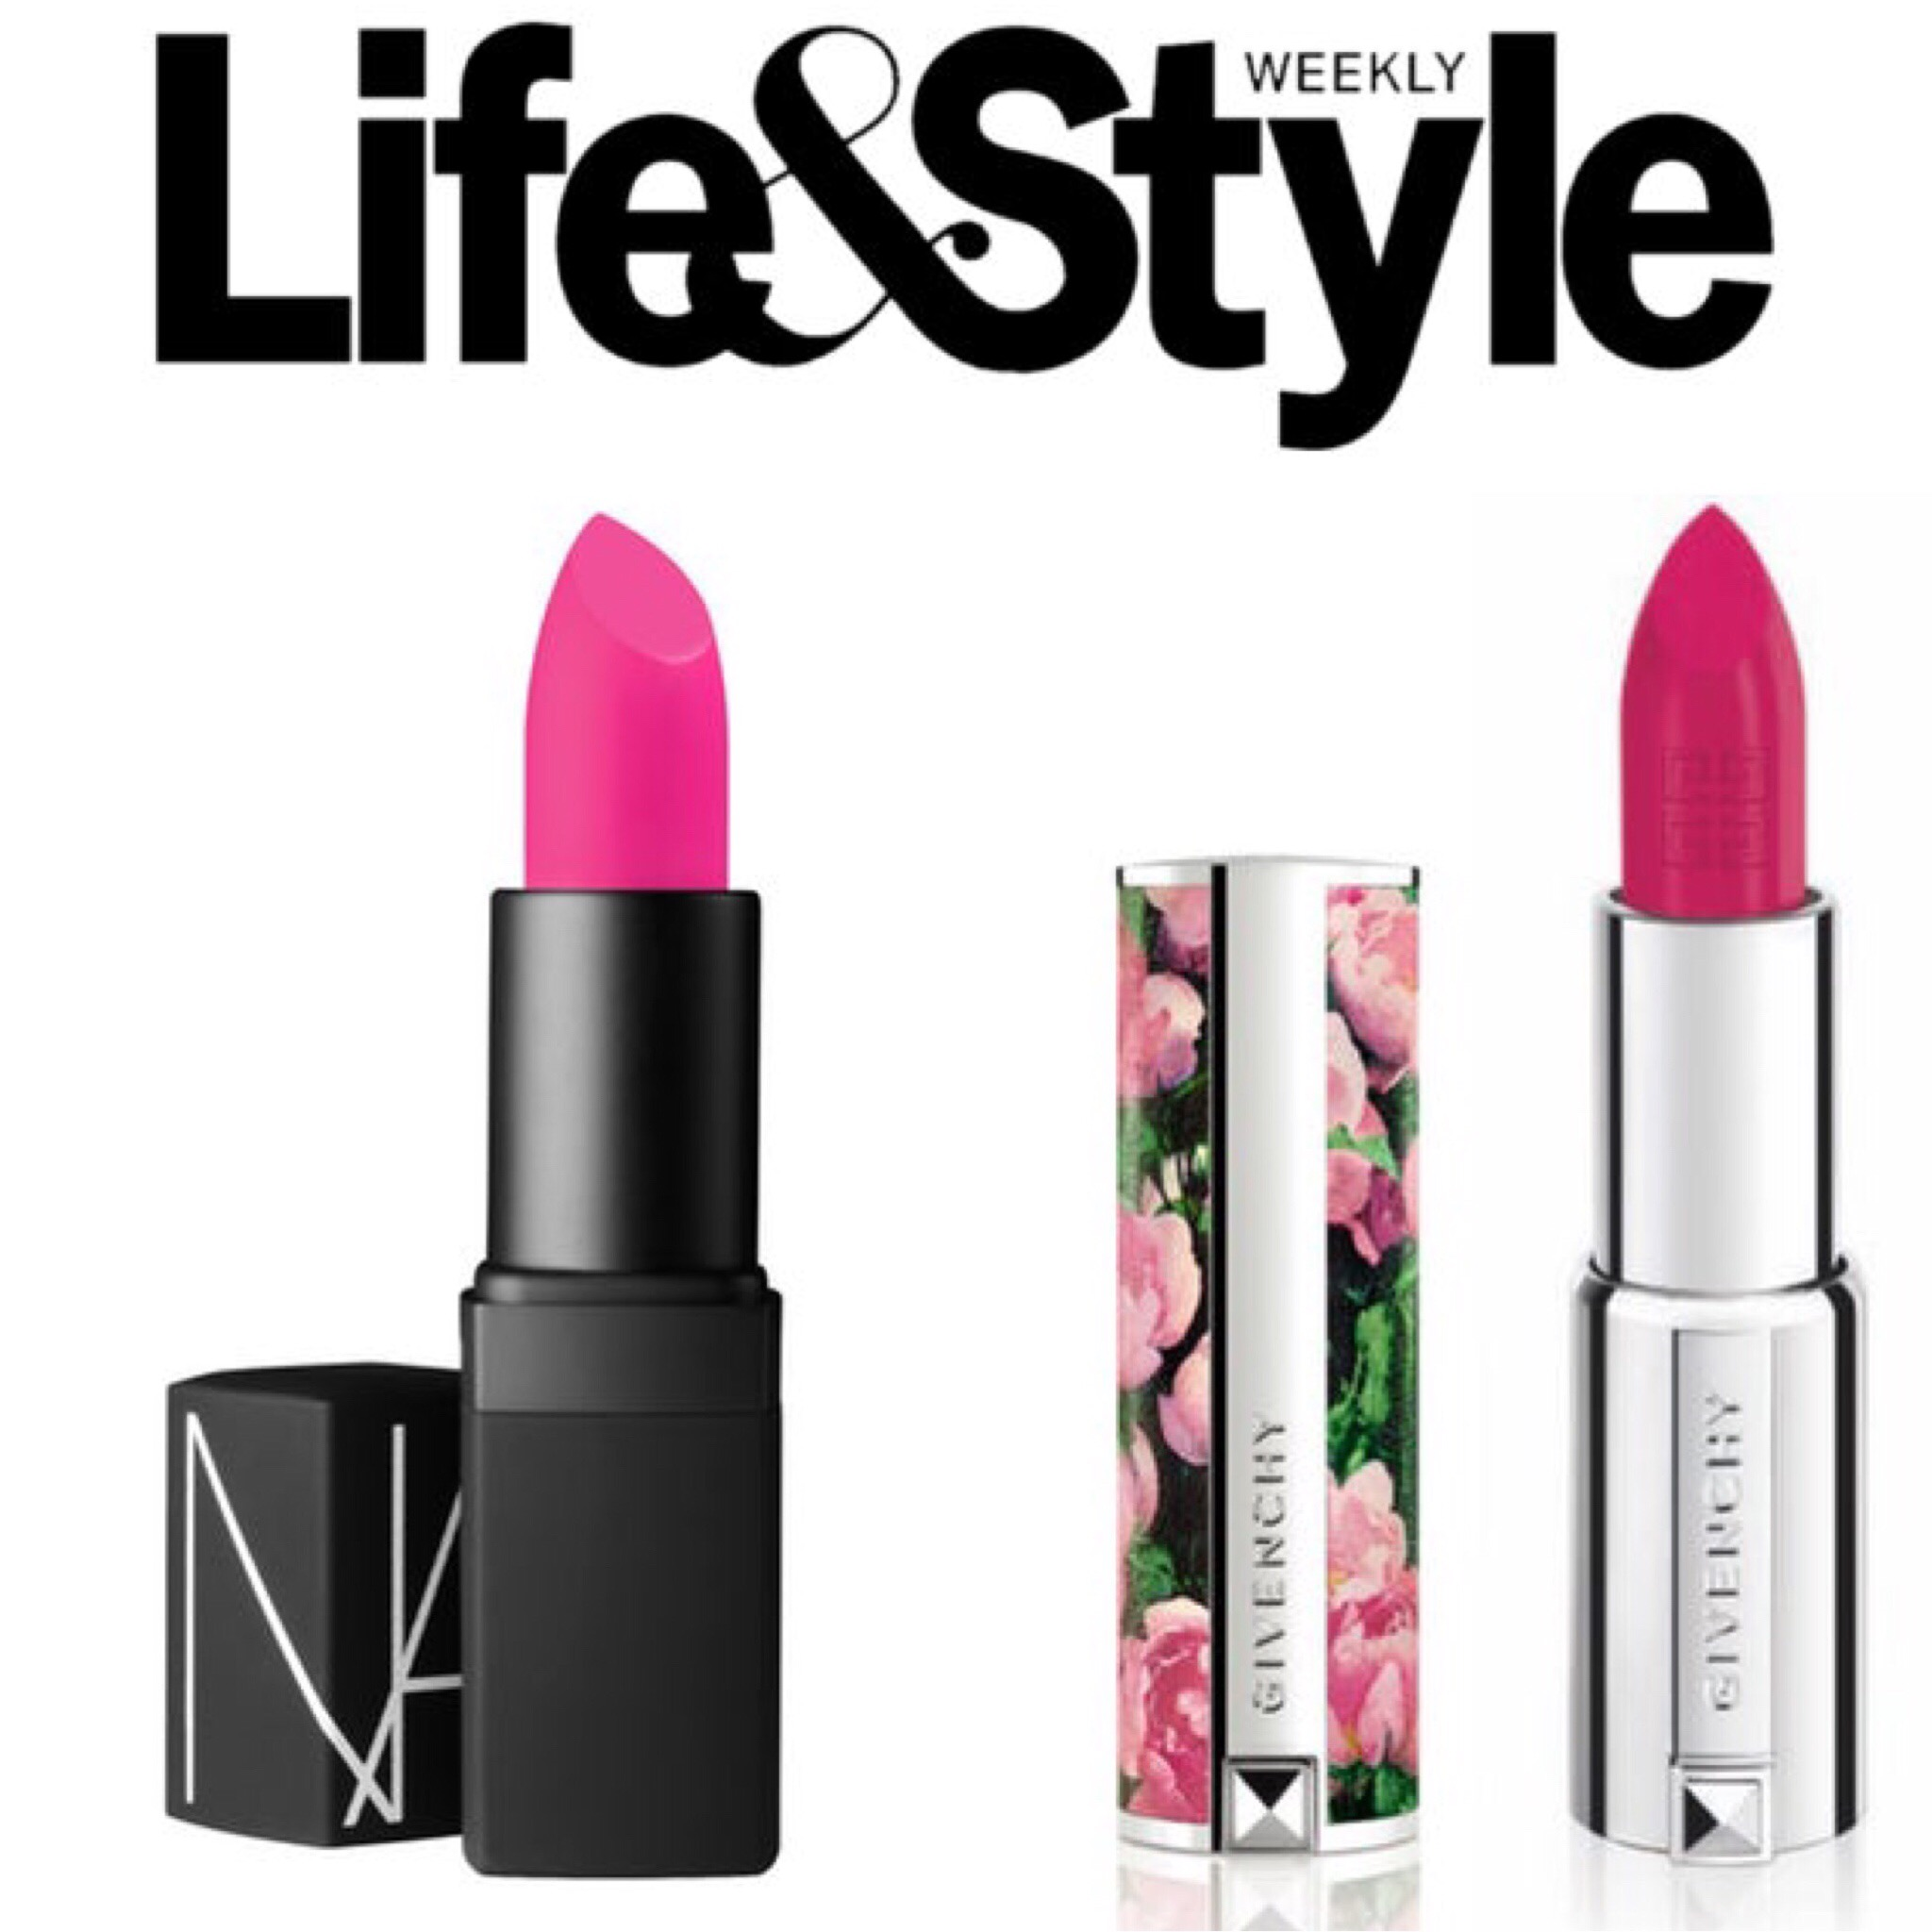 http://www.lifeandstylemag.com/posts/national-lipstick-day-64418/photos/national-lipstick-day-106414